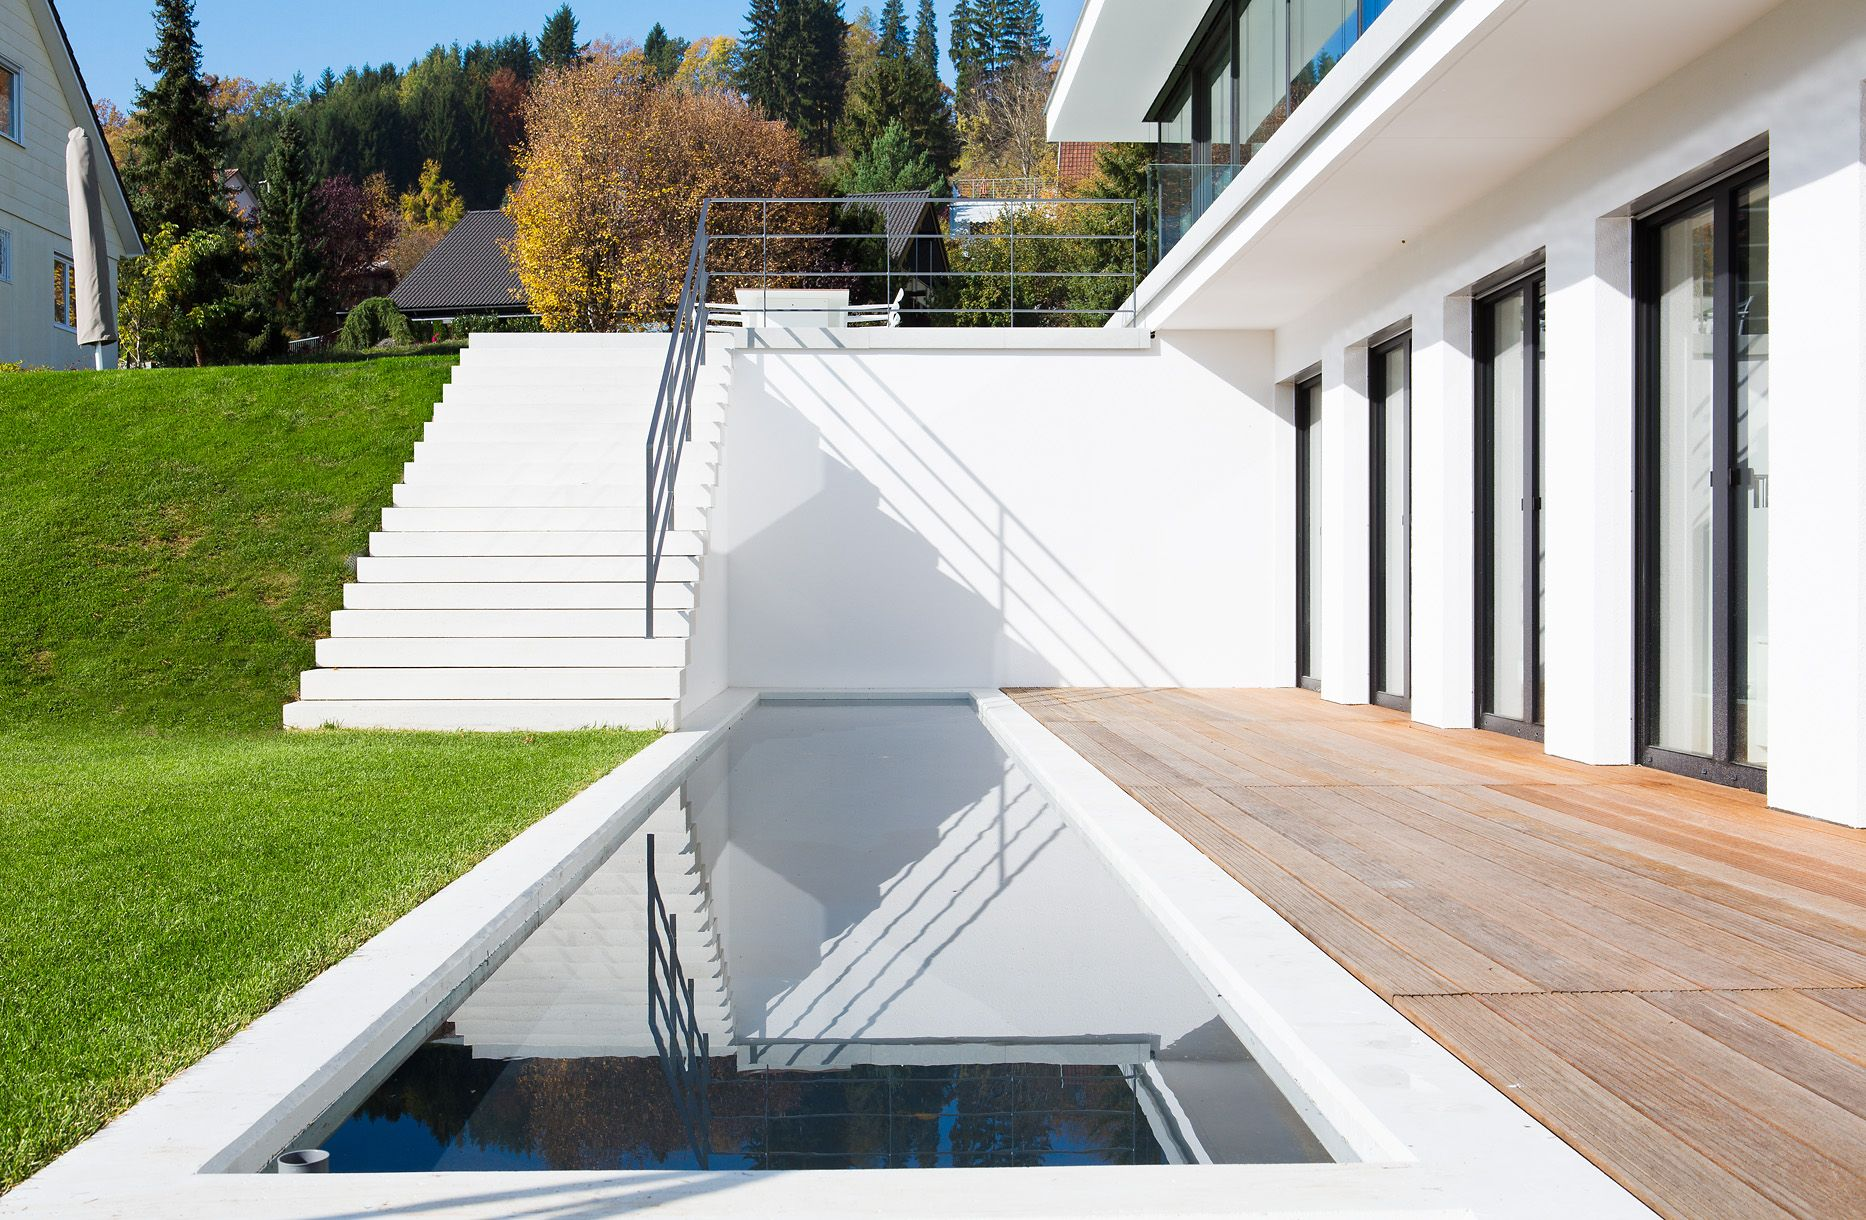 A shallow pool draws a waterline in the garden level, right infront of the private rooms.